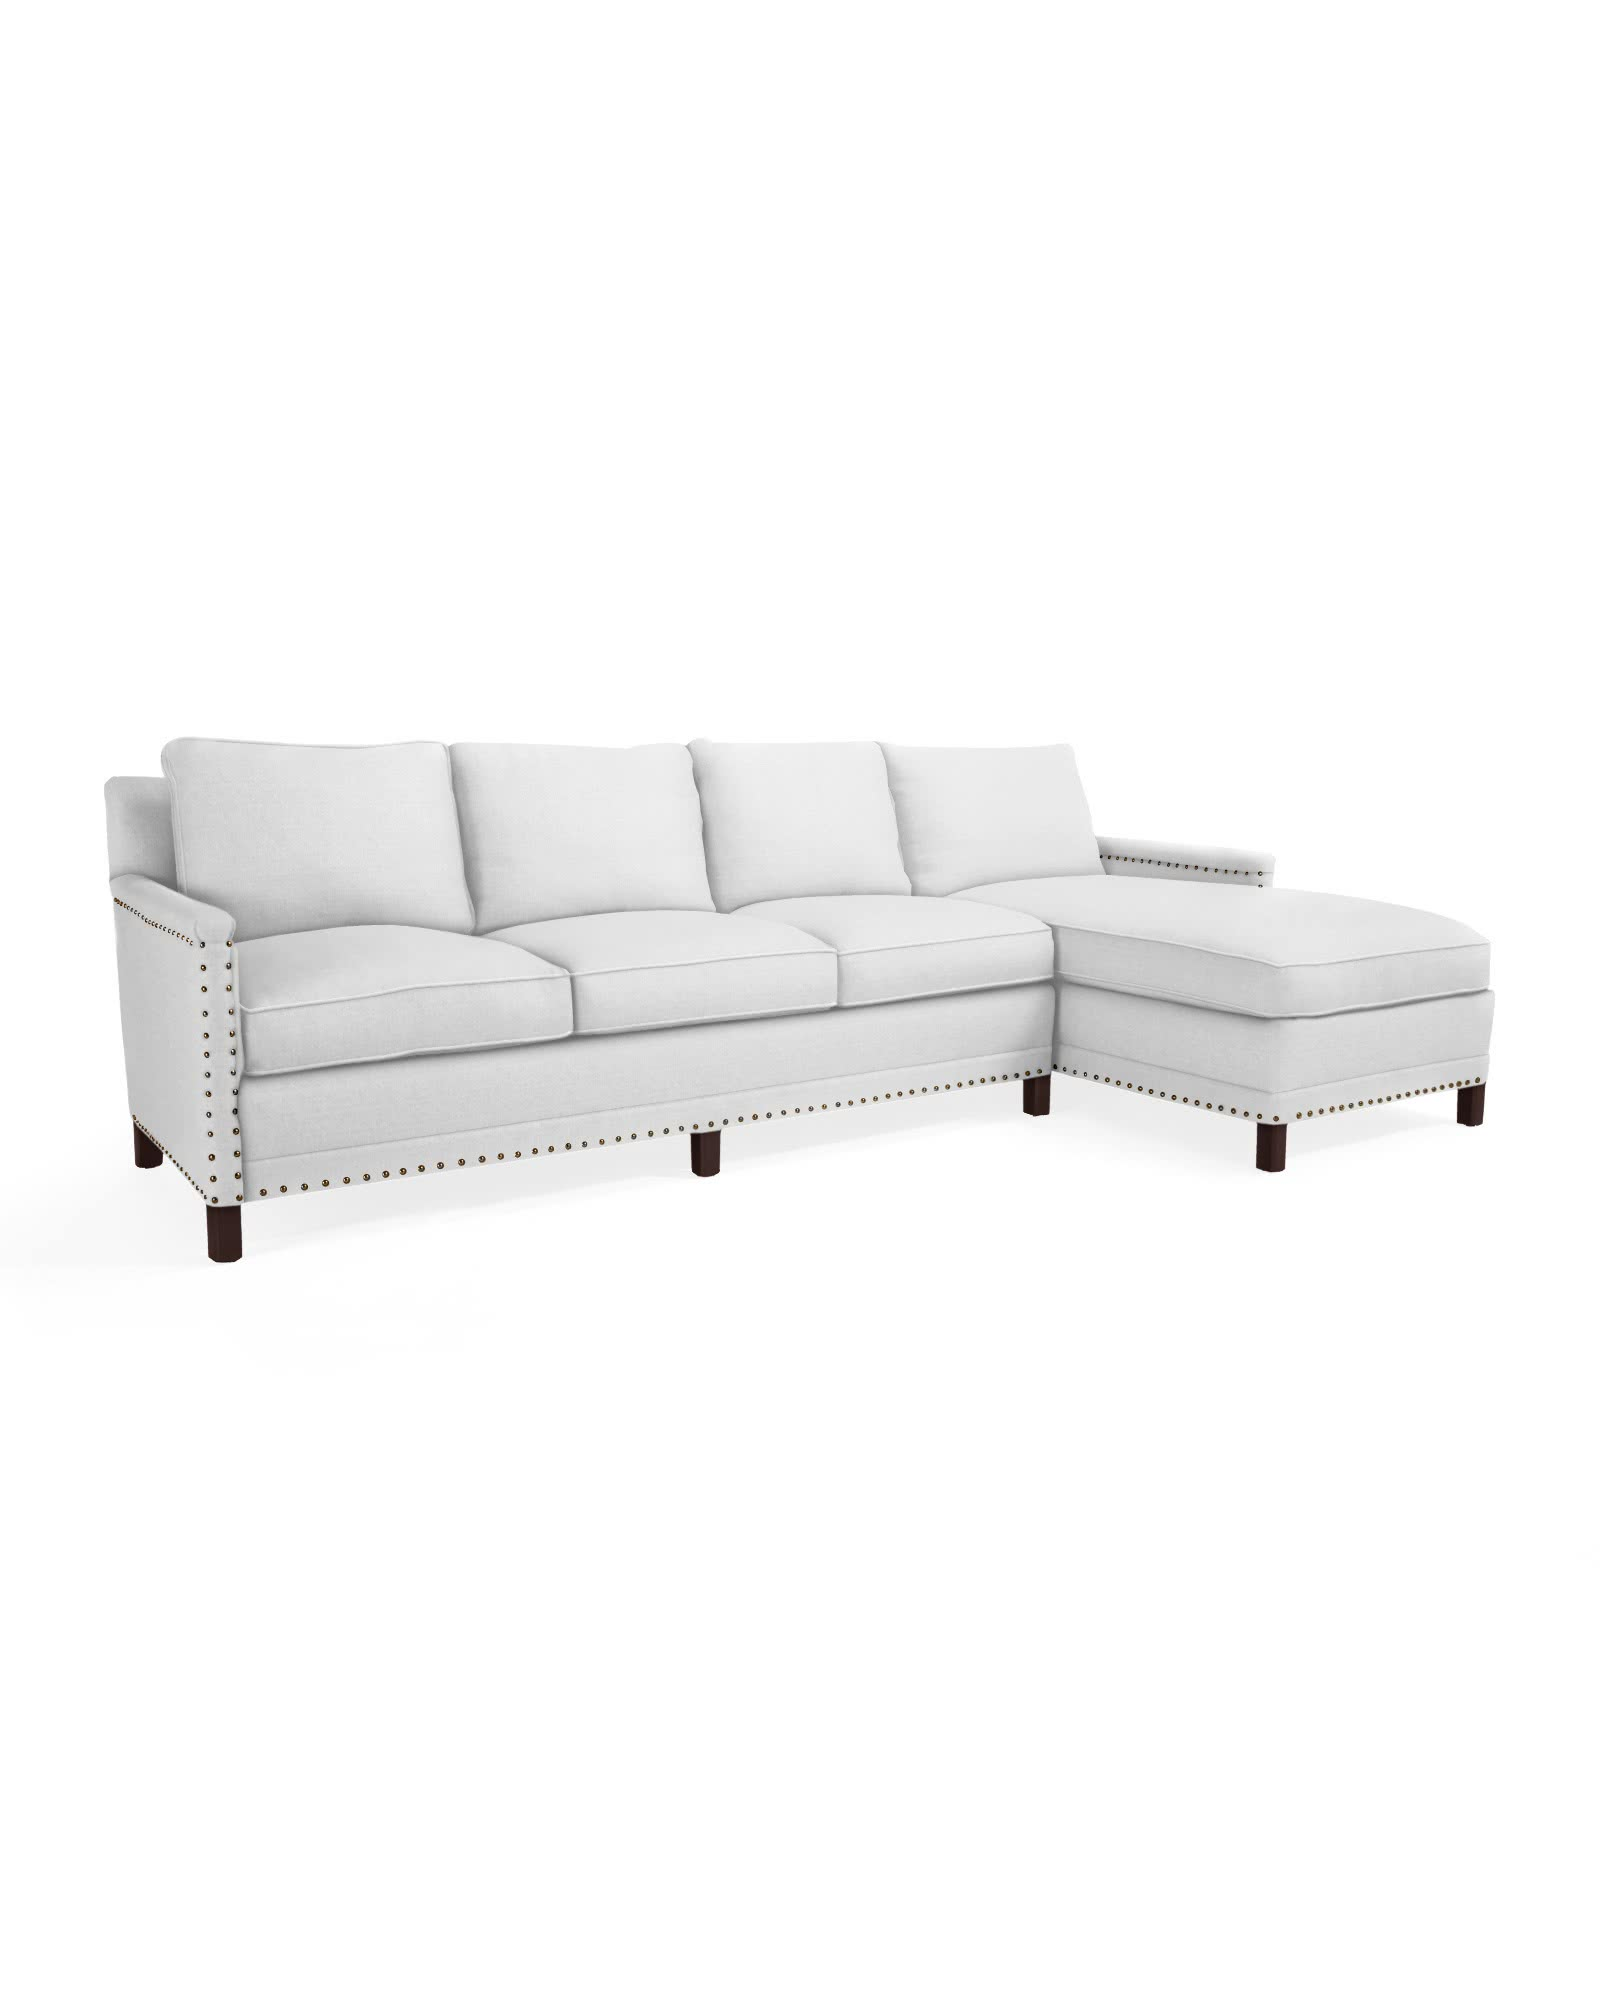 Spruce Street Right-Facing Chaise Sectional with Nailheads,